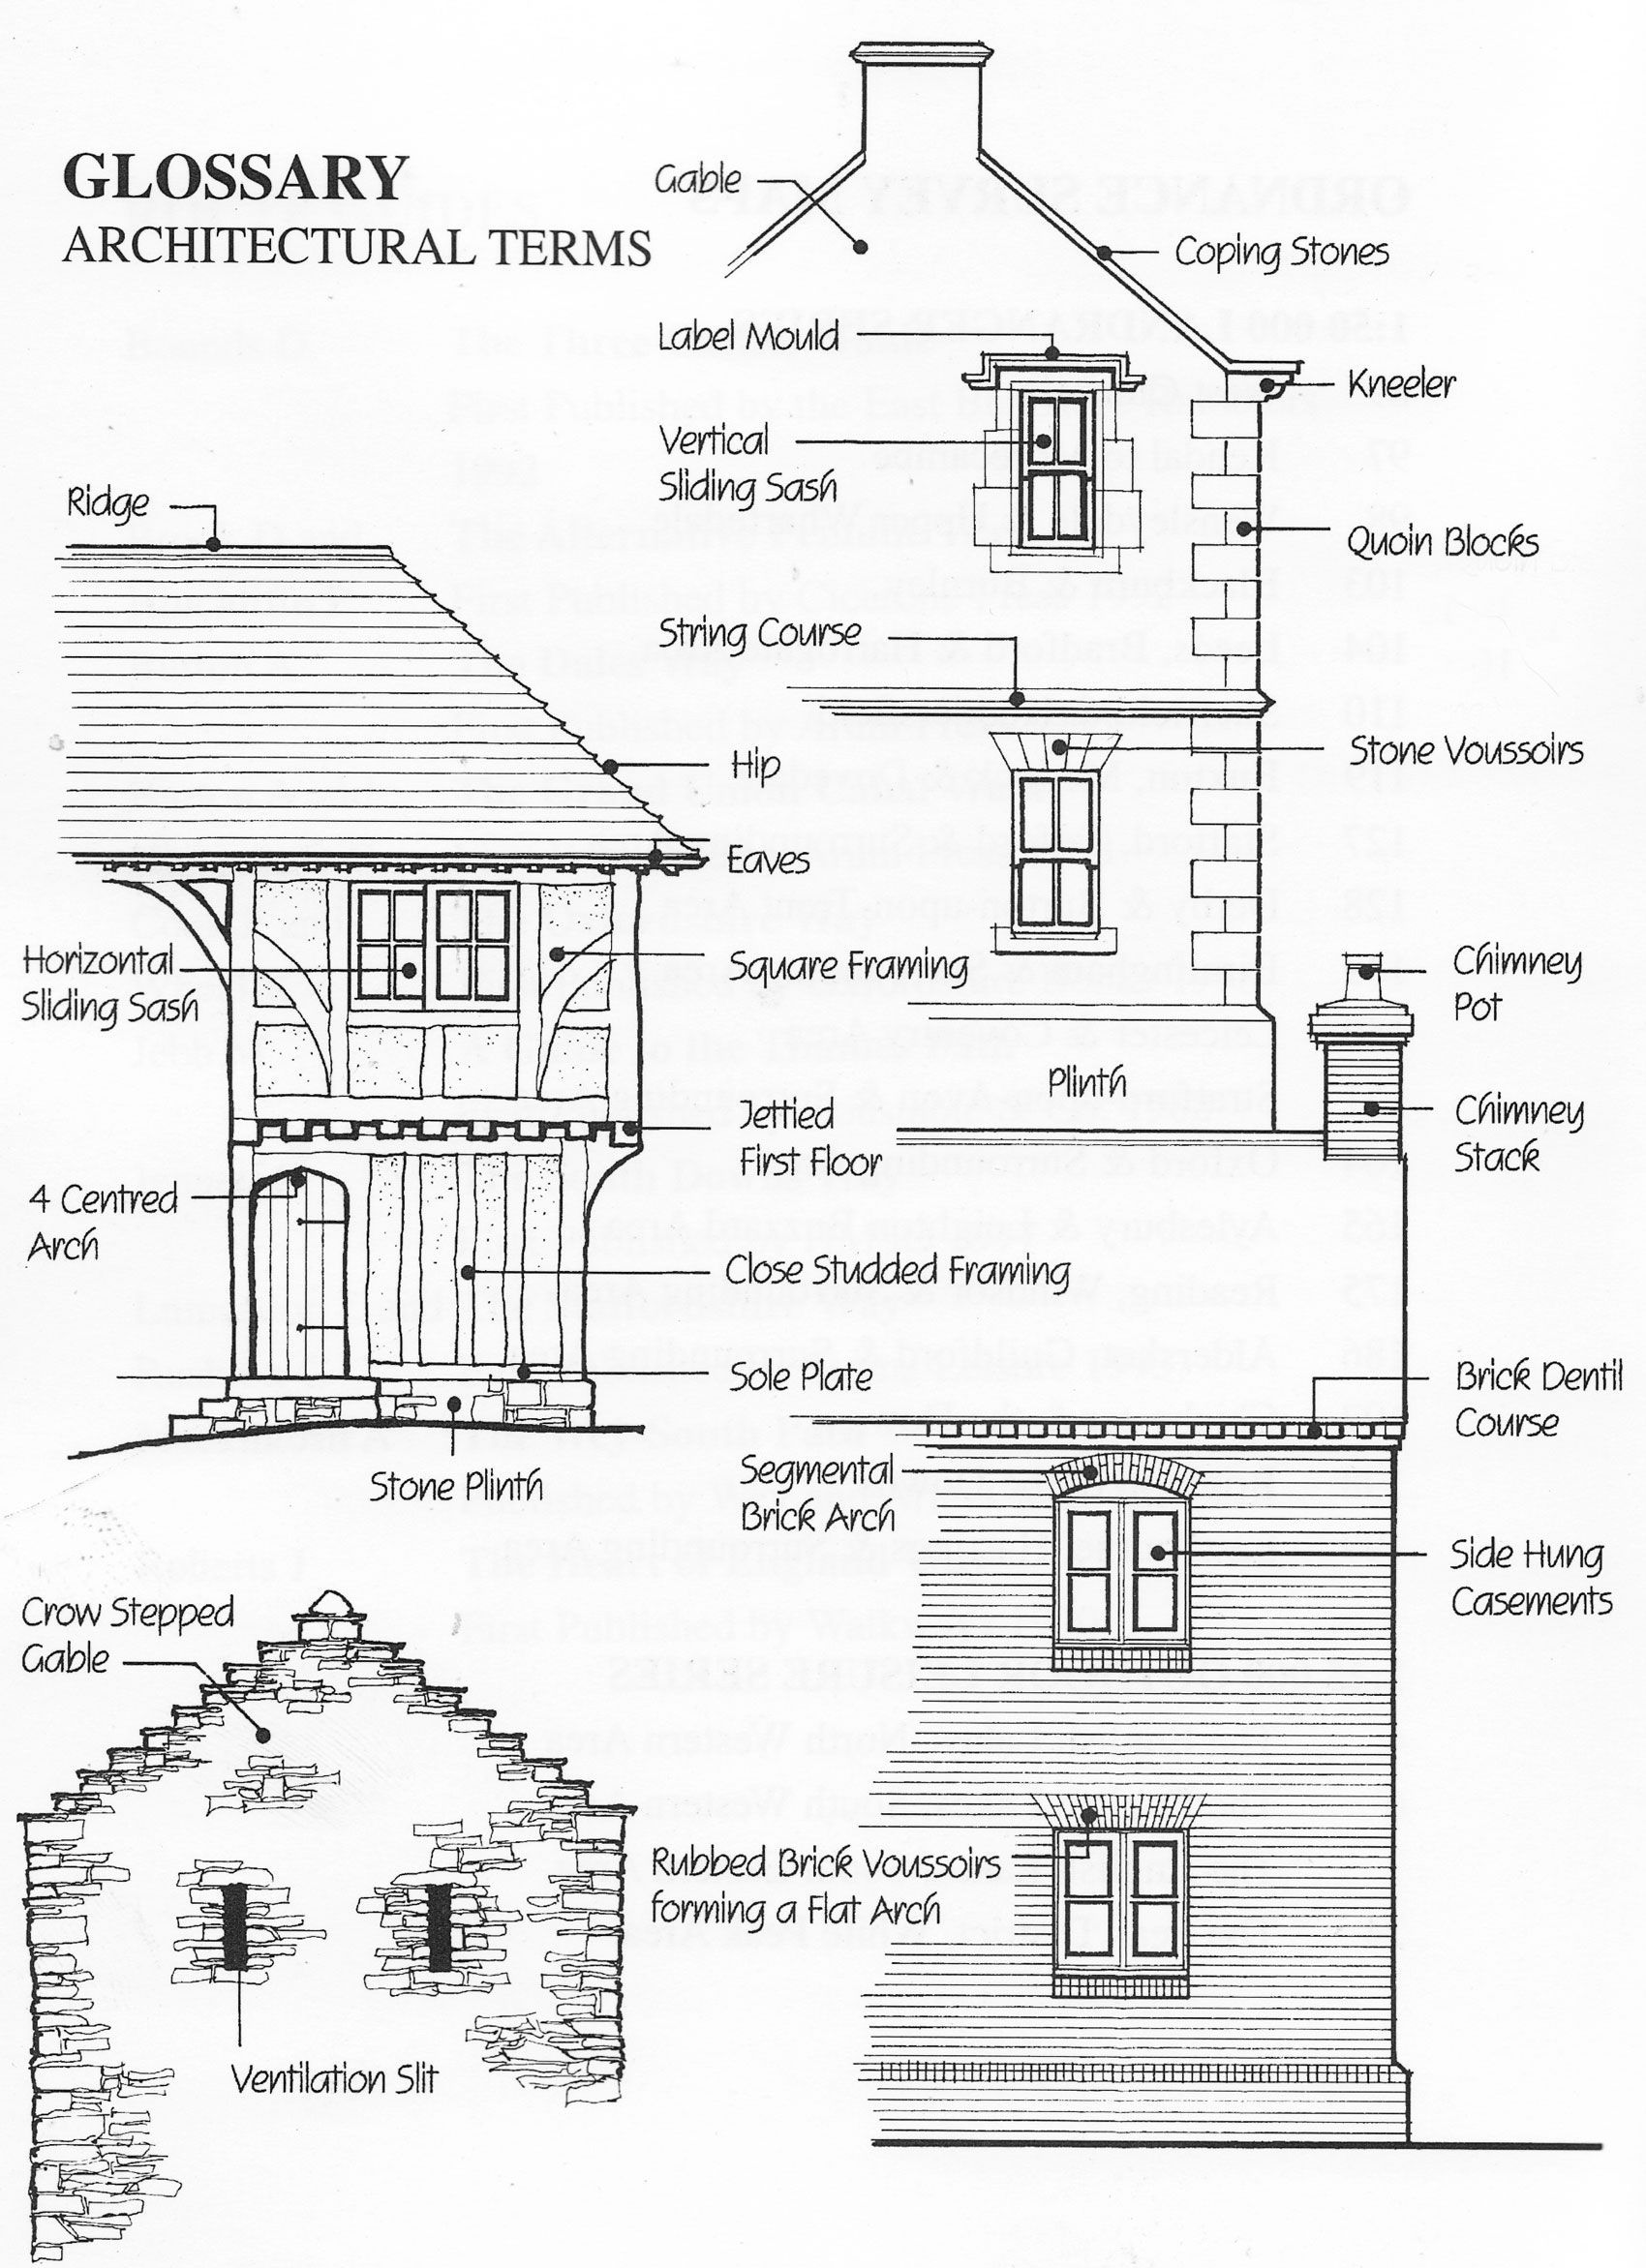 architectural terminology | Glossary of Architectural Terms ...